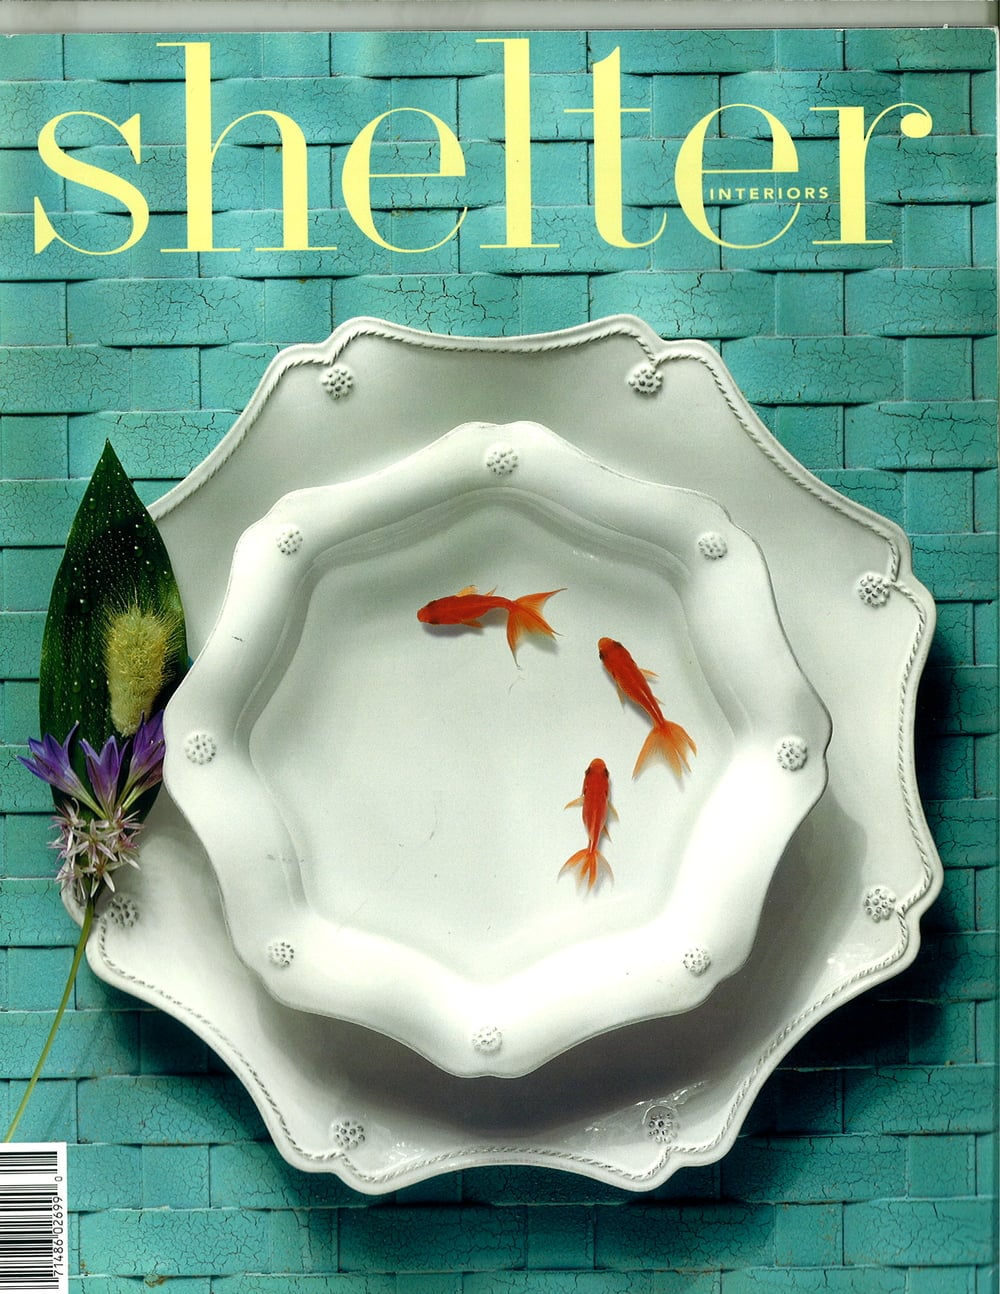 Shelter Interiors magazine